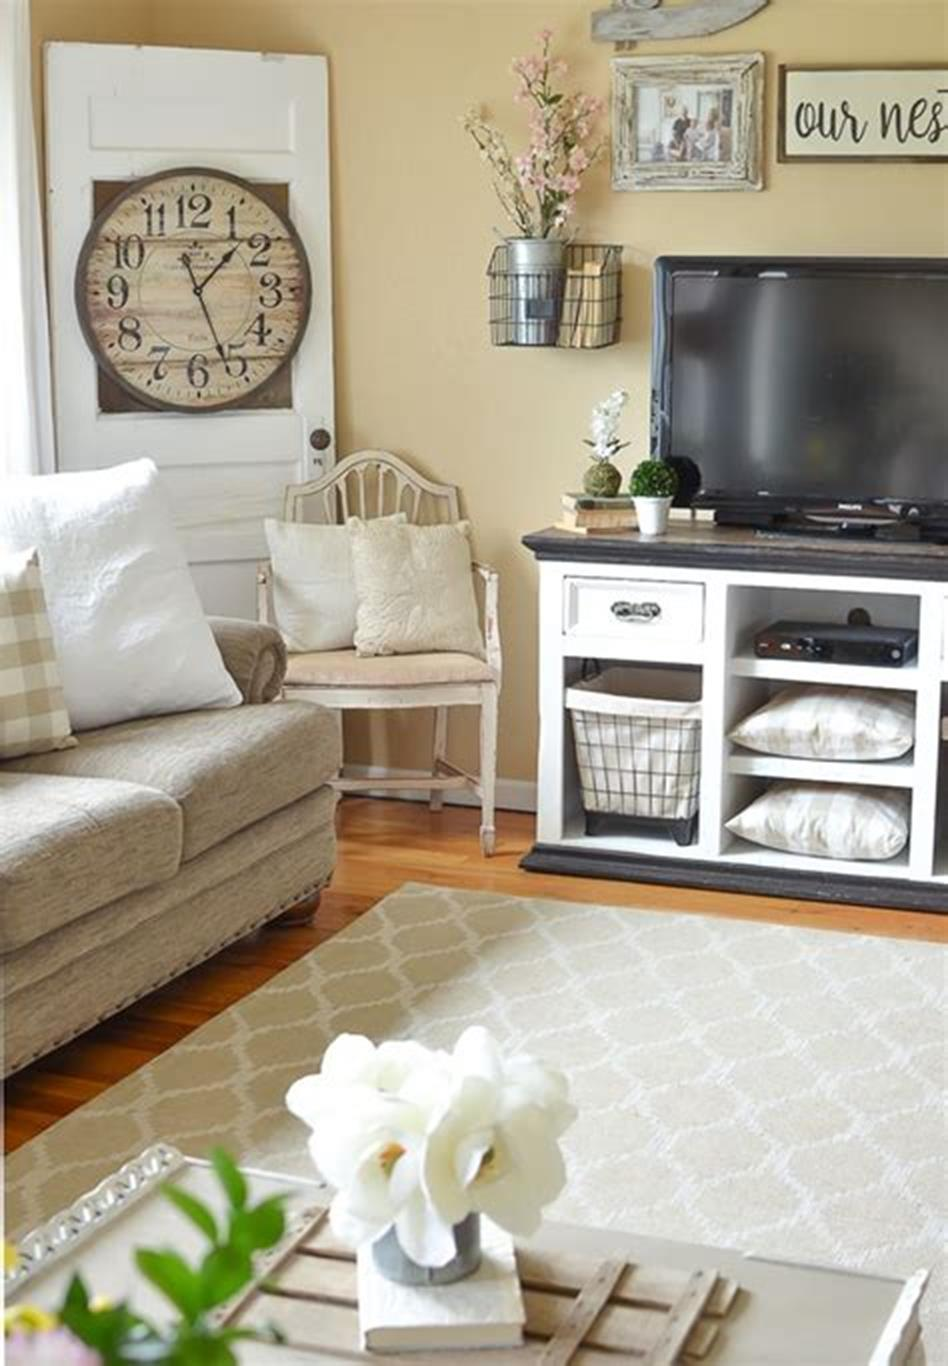 37 Beautiful Farmhouse Spring Decorating Ideas On a Budget for 2019 38